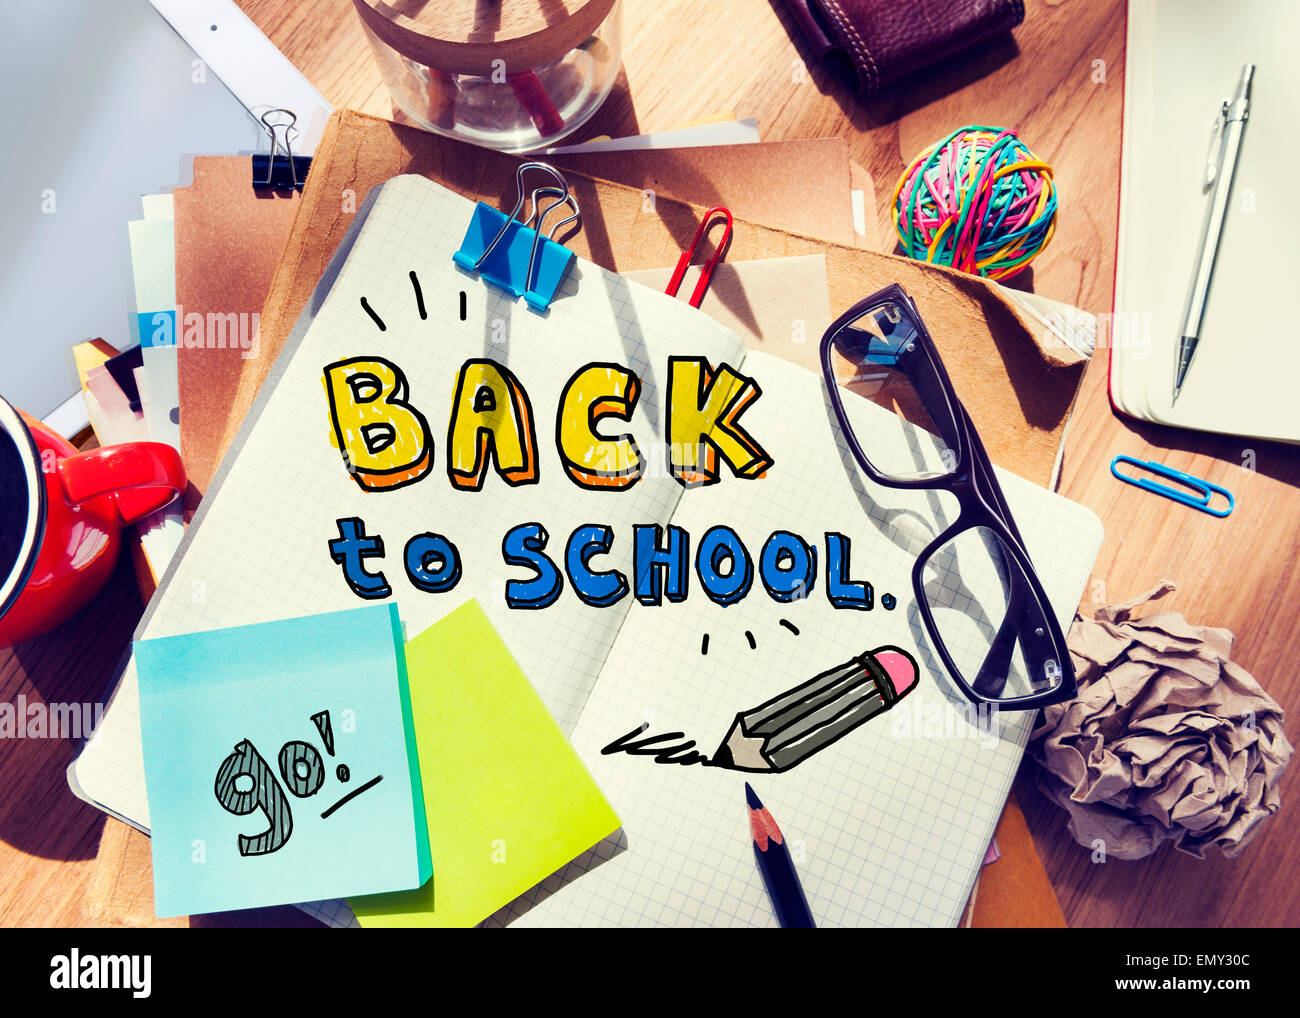 Messy Desk with Back to School Concept - Stock Image